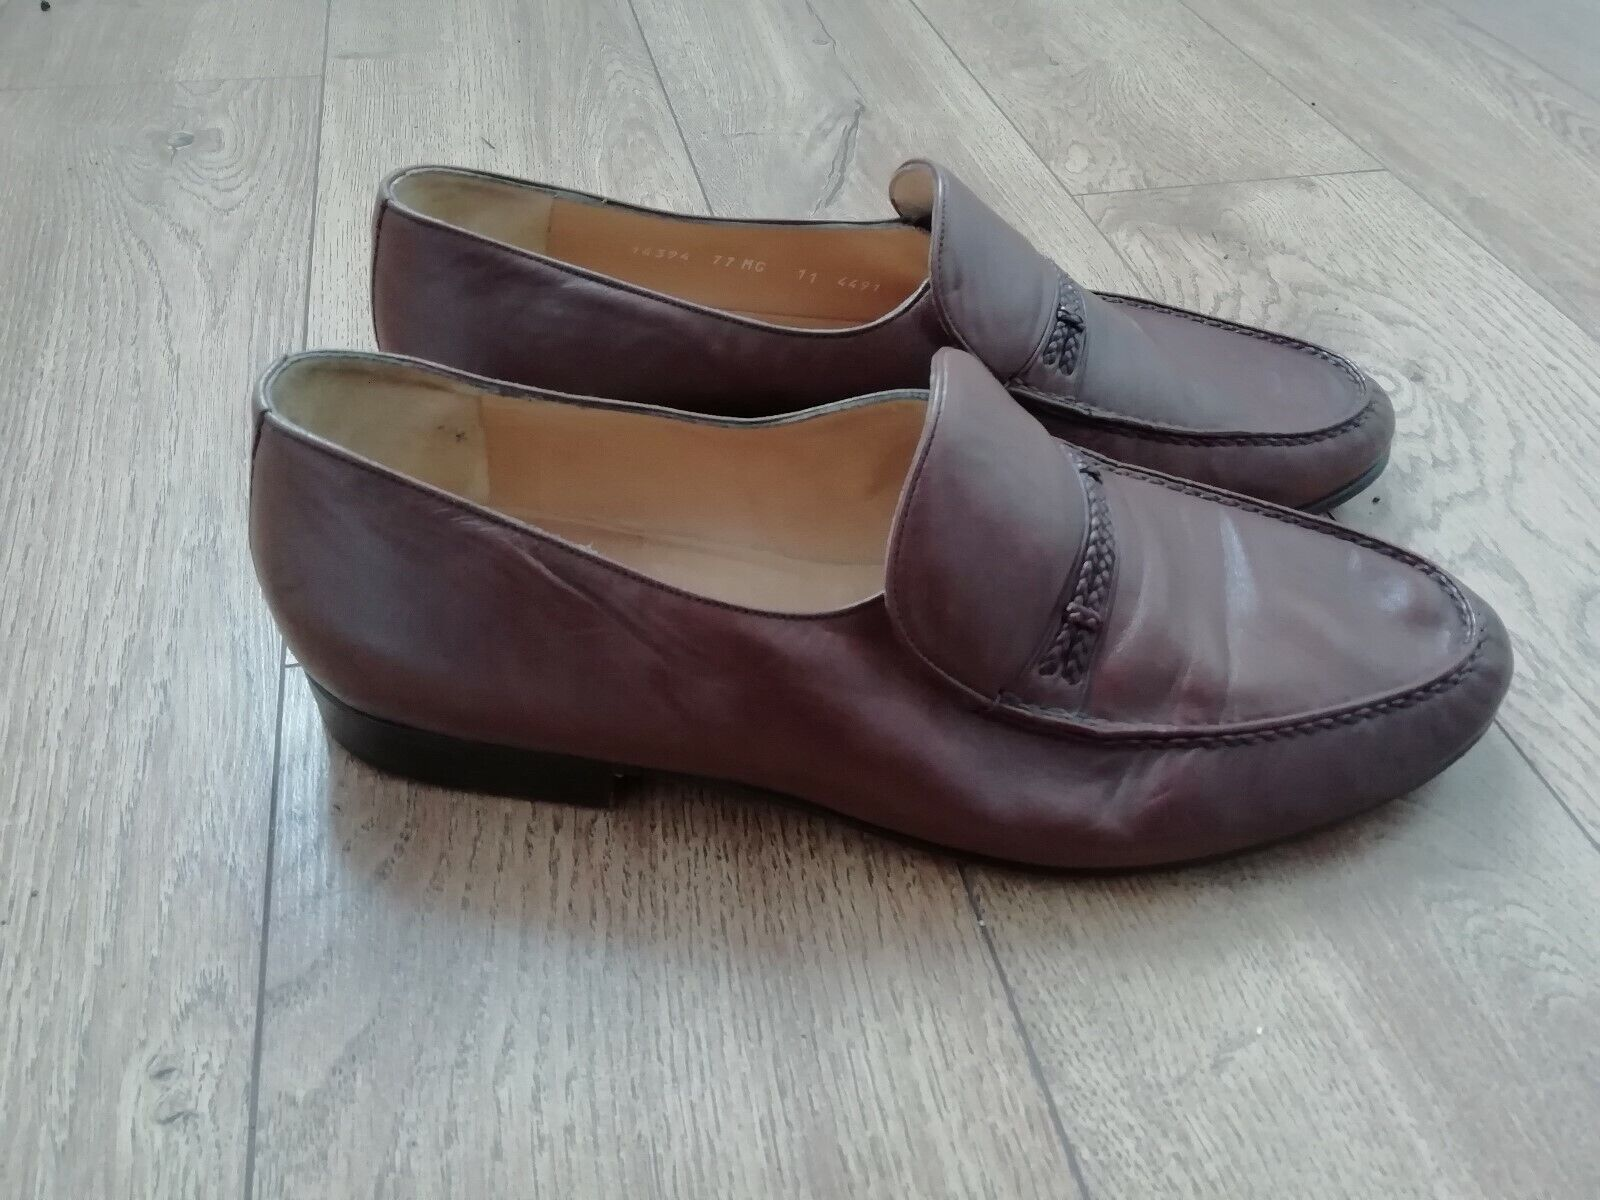 STEMAR SHOES 11 MADE IN ITALY FOR KURT GEIGER SOFT LEATHER LOAFERS